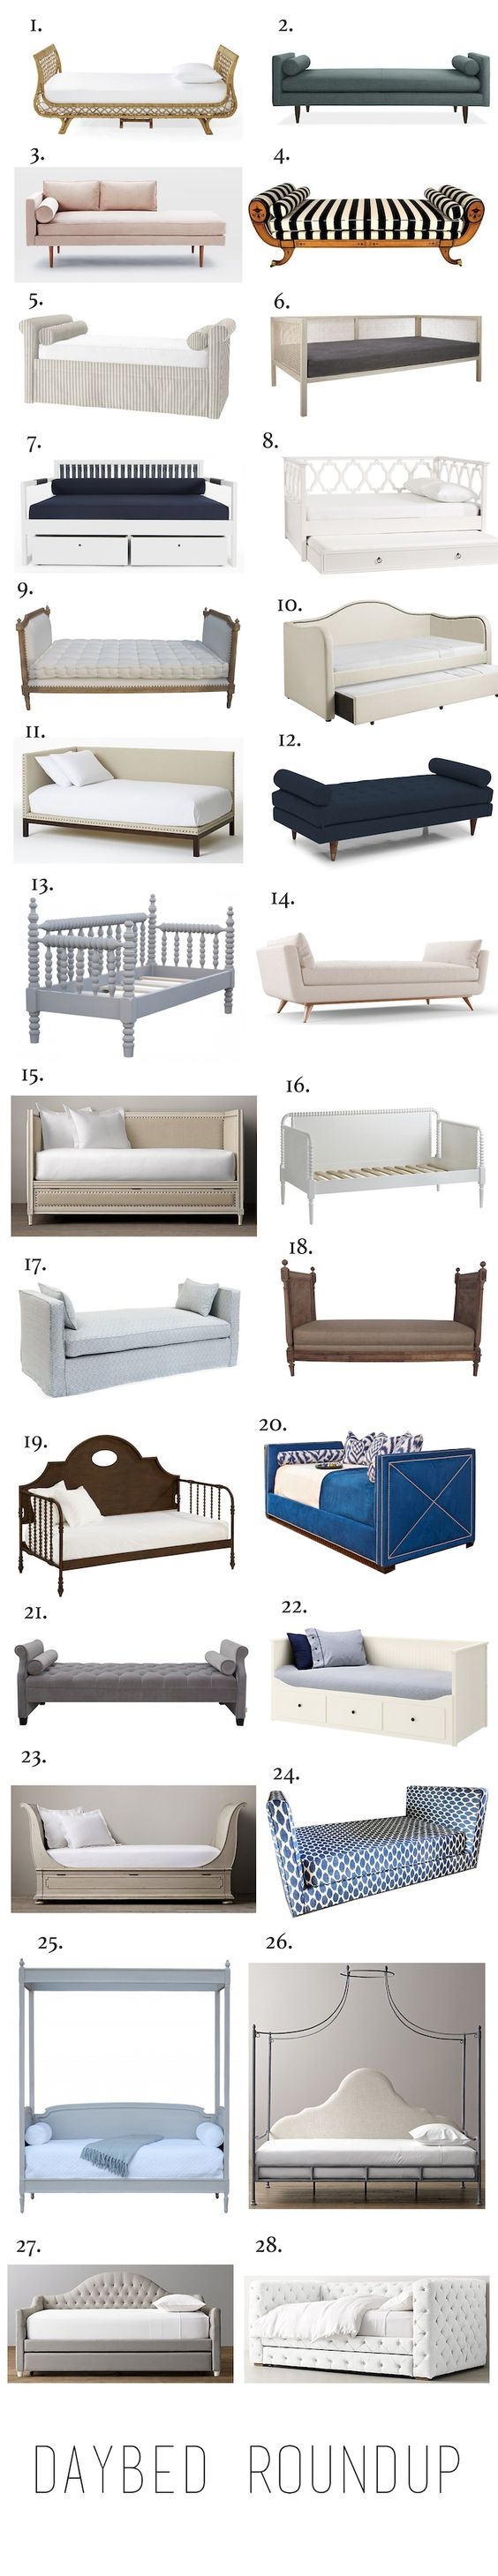 Elements of Style Blog | Daybed Roundup | http://www.elementsofstyleblog.com